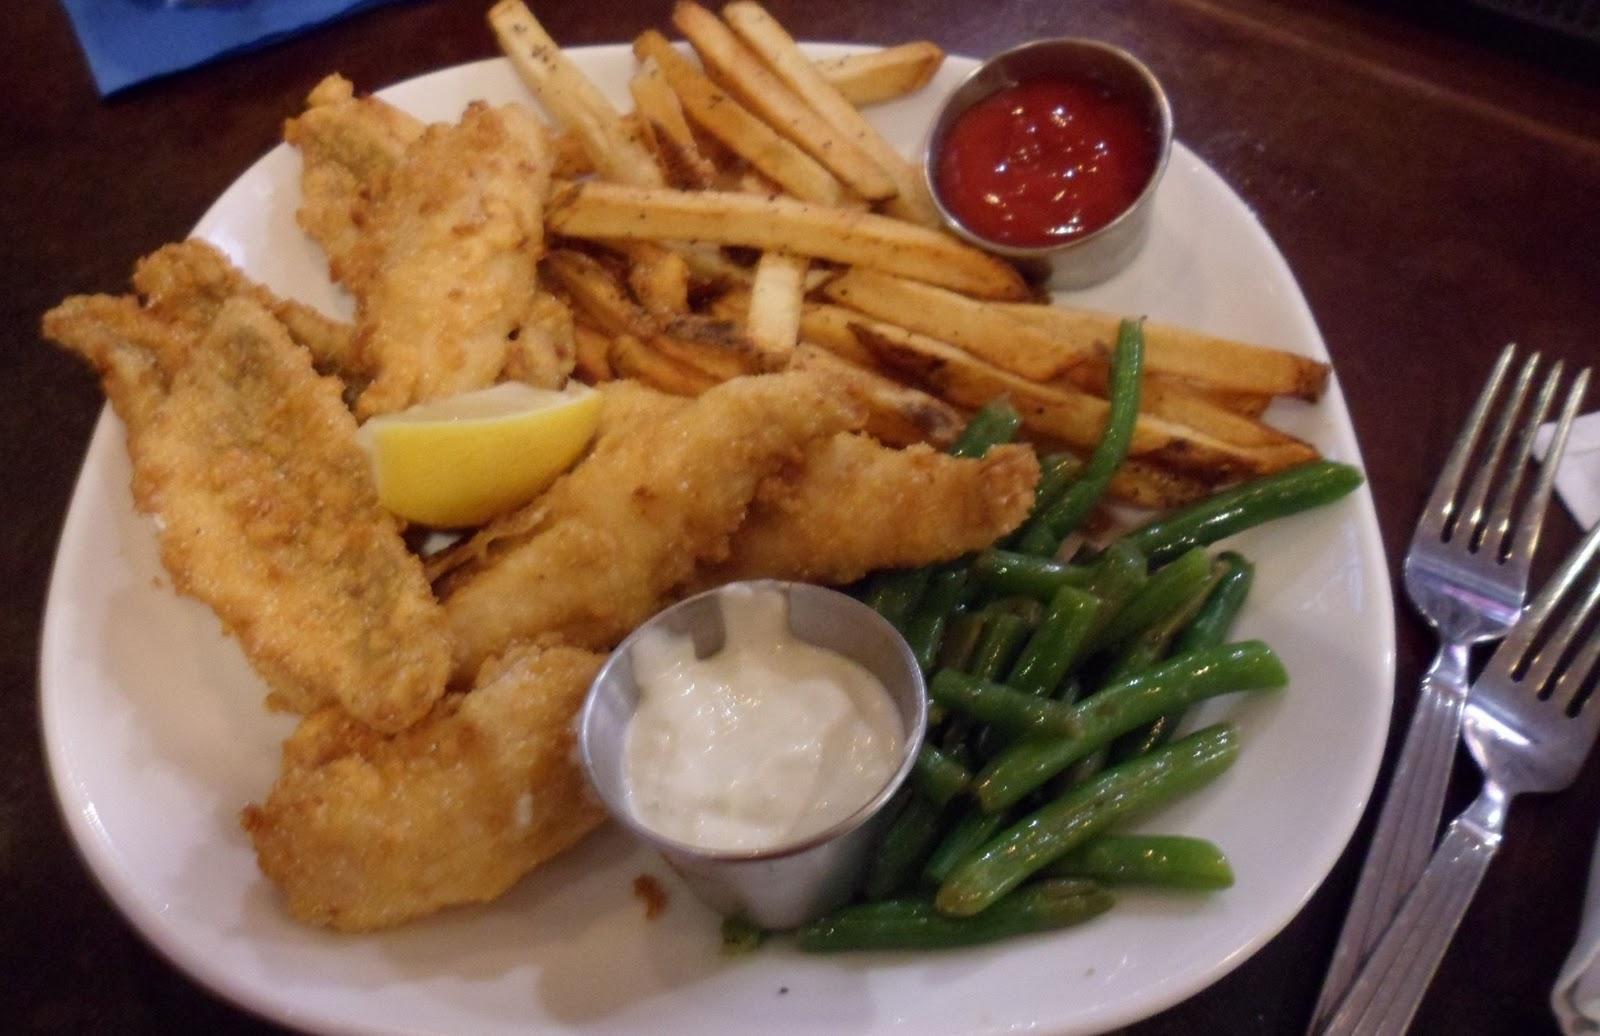 fried fish dinner with french fries and green beans on a white plate